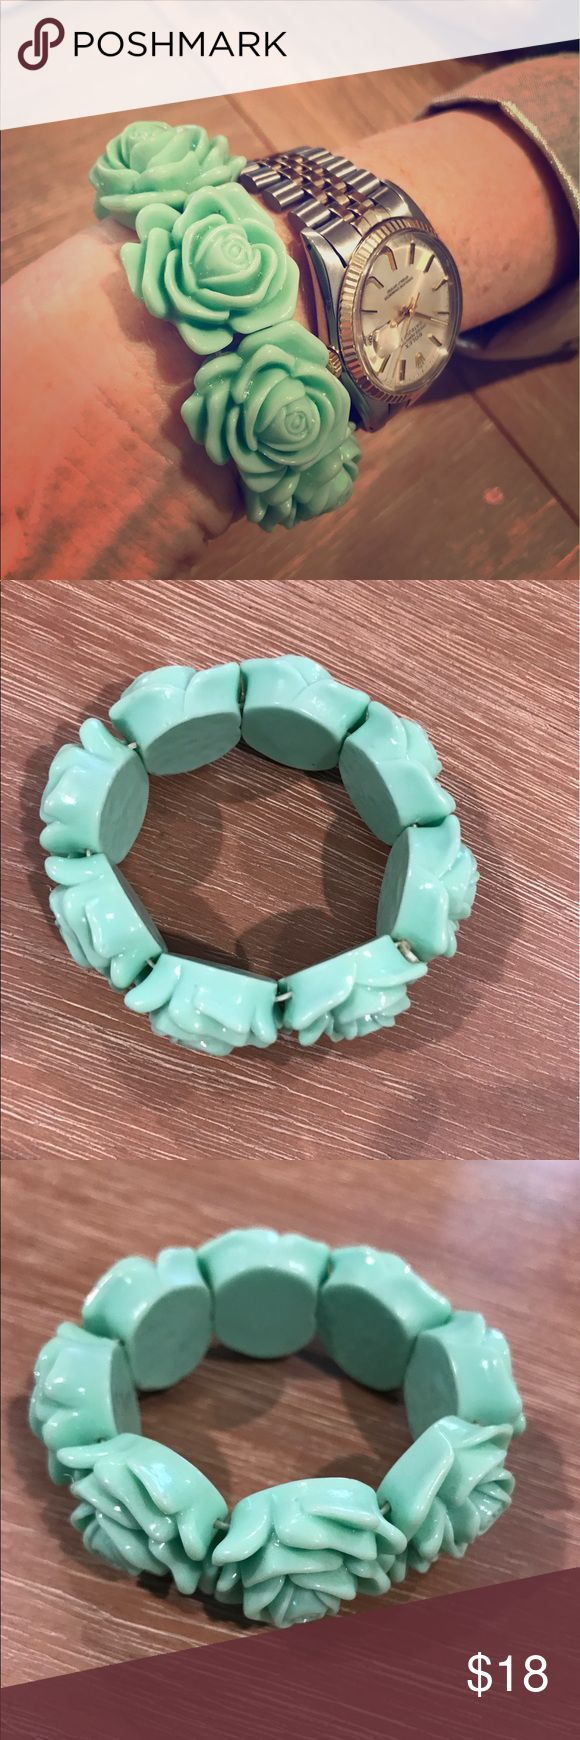 Teal flowered bracelet BOUTIQUE 🔹one size fits all🔹plastic rosettes make up this fun little stretchy piece for your wrist!! Purchased with a few dresses one day, at a local Beverly Hills boutique! boutique Jewelry Bracelets